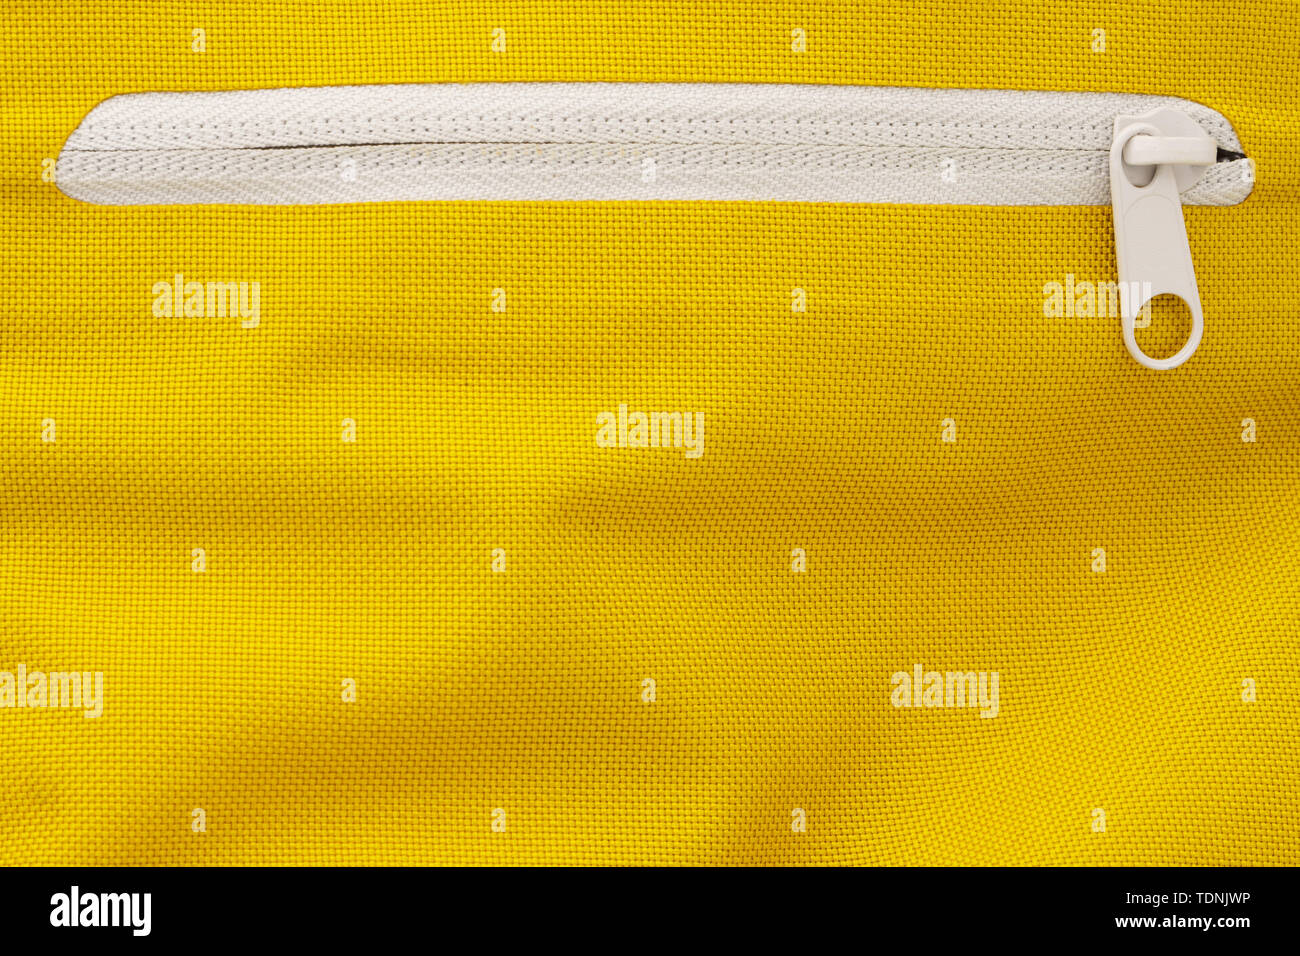 White Zipper in a Yellow Sports Backpack. Zippers Background - Stock Image